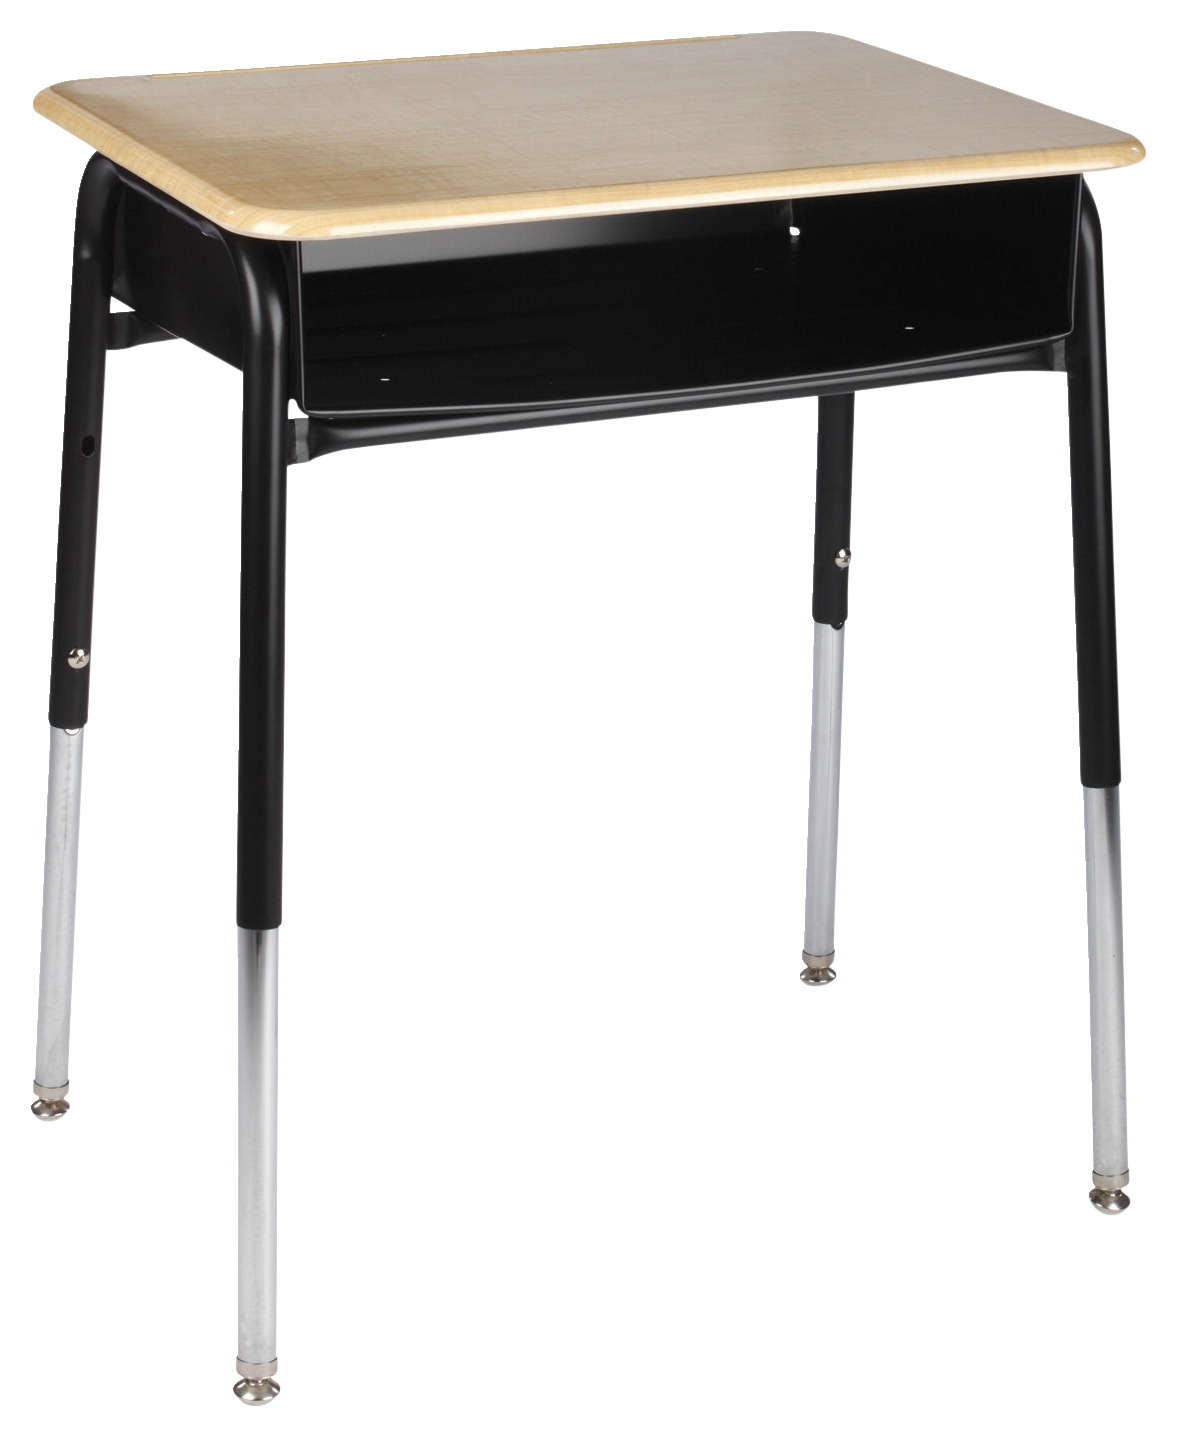 Classroom Select Royal Seating 1600 Open Front Desk, Metal Book Box, 24 x 18 Inches, Hard Plastic Top, Black Frame, Various Options